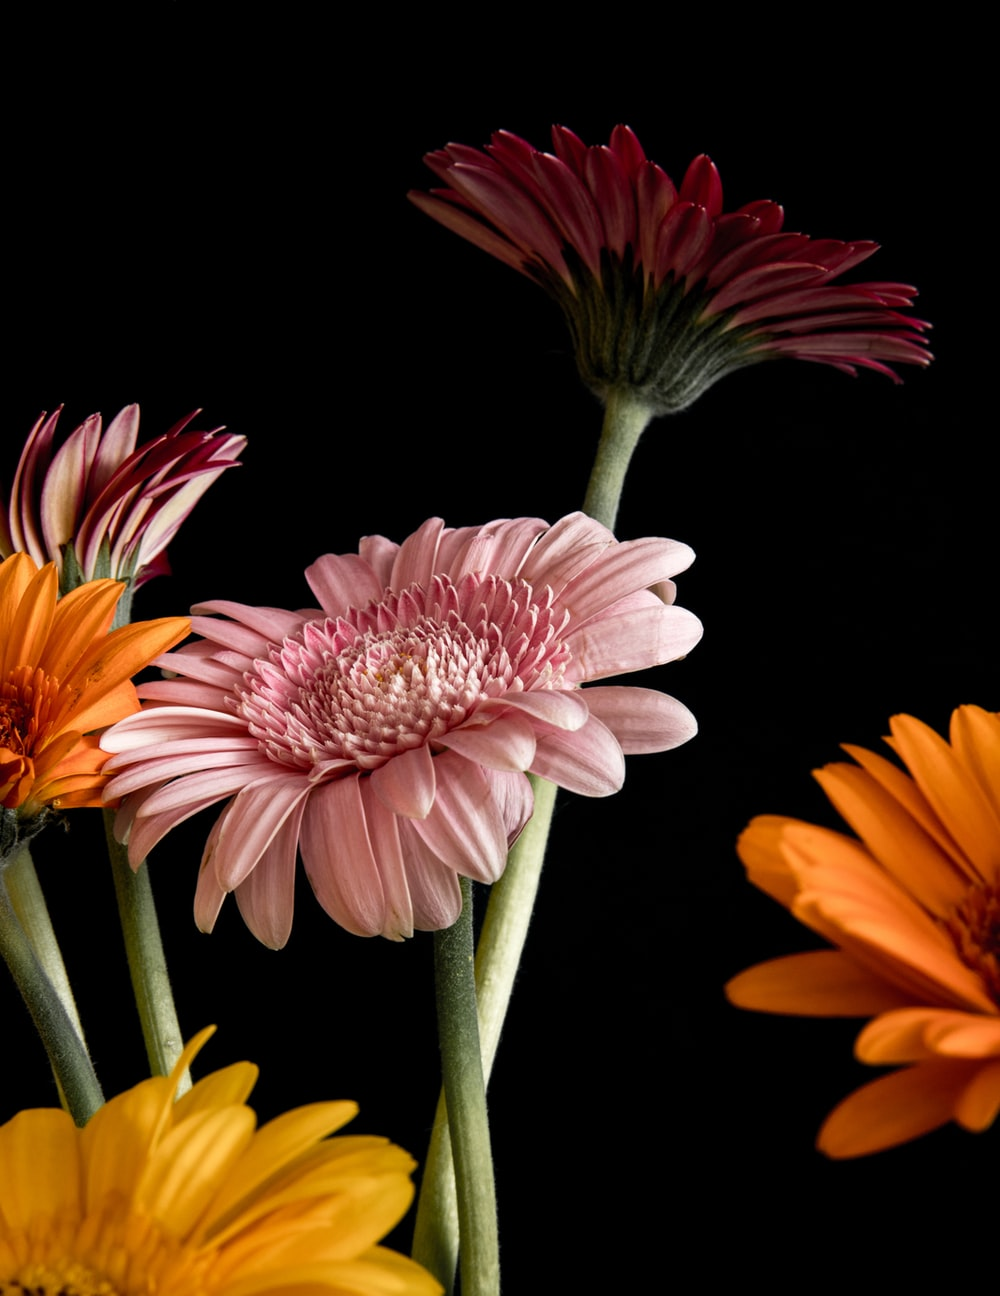 pink and yellow flower in black background